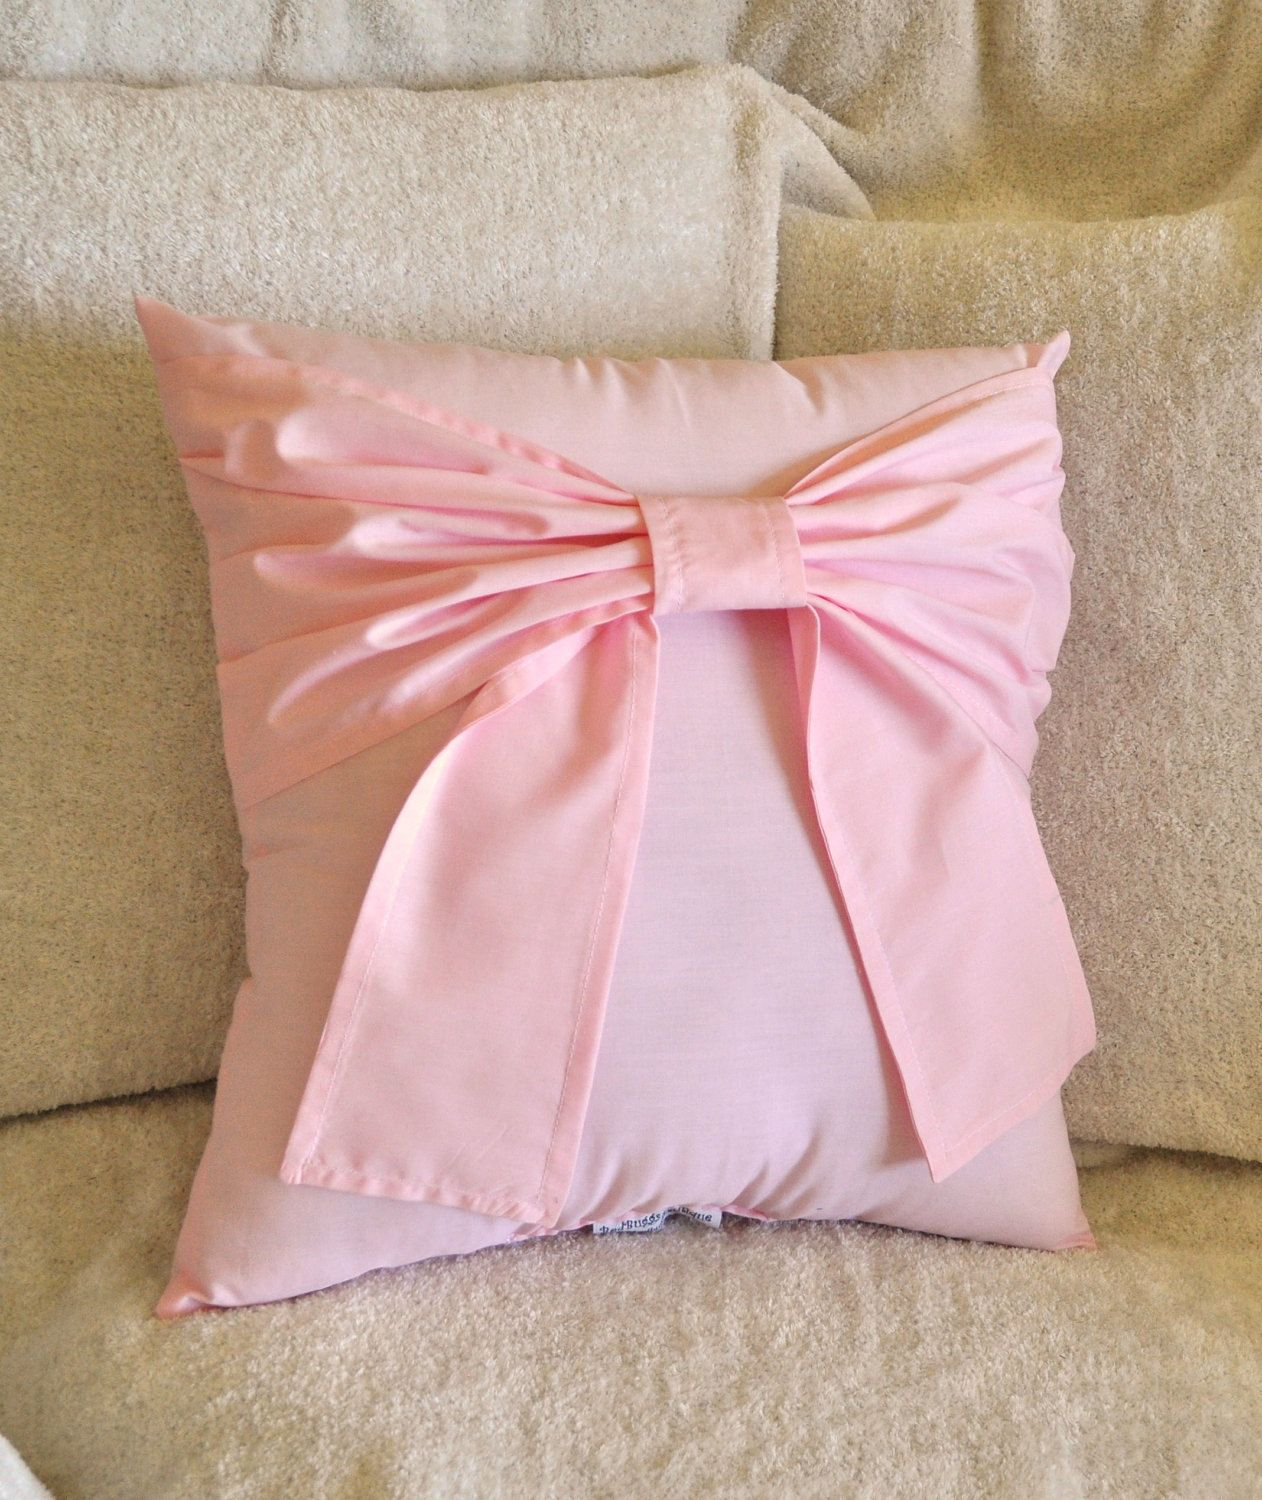 Statuette of Wide Variants of Pink Accent Pillows for Indoor or ...